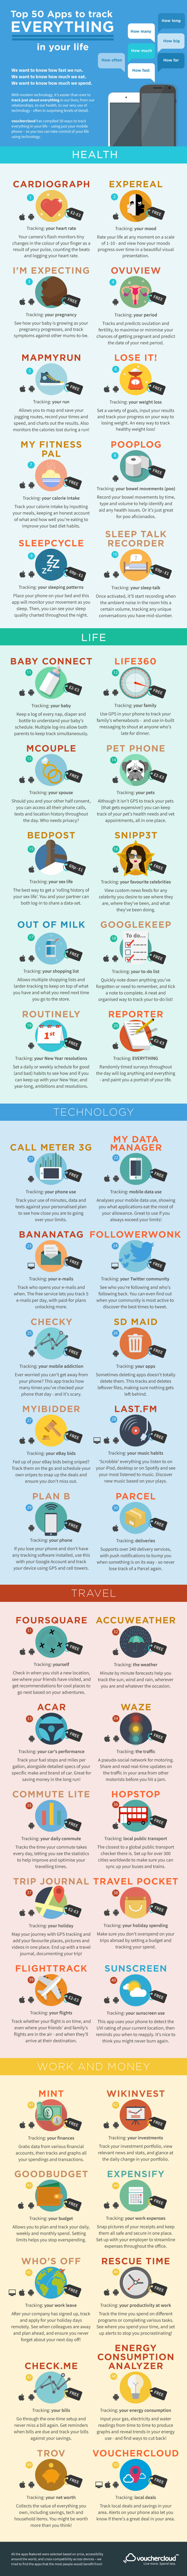 50 Apps To Optimize Your Time And Life With [Infographic]